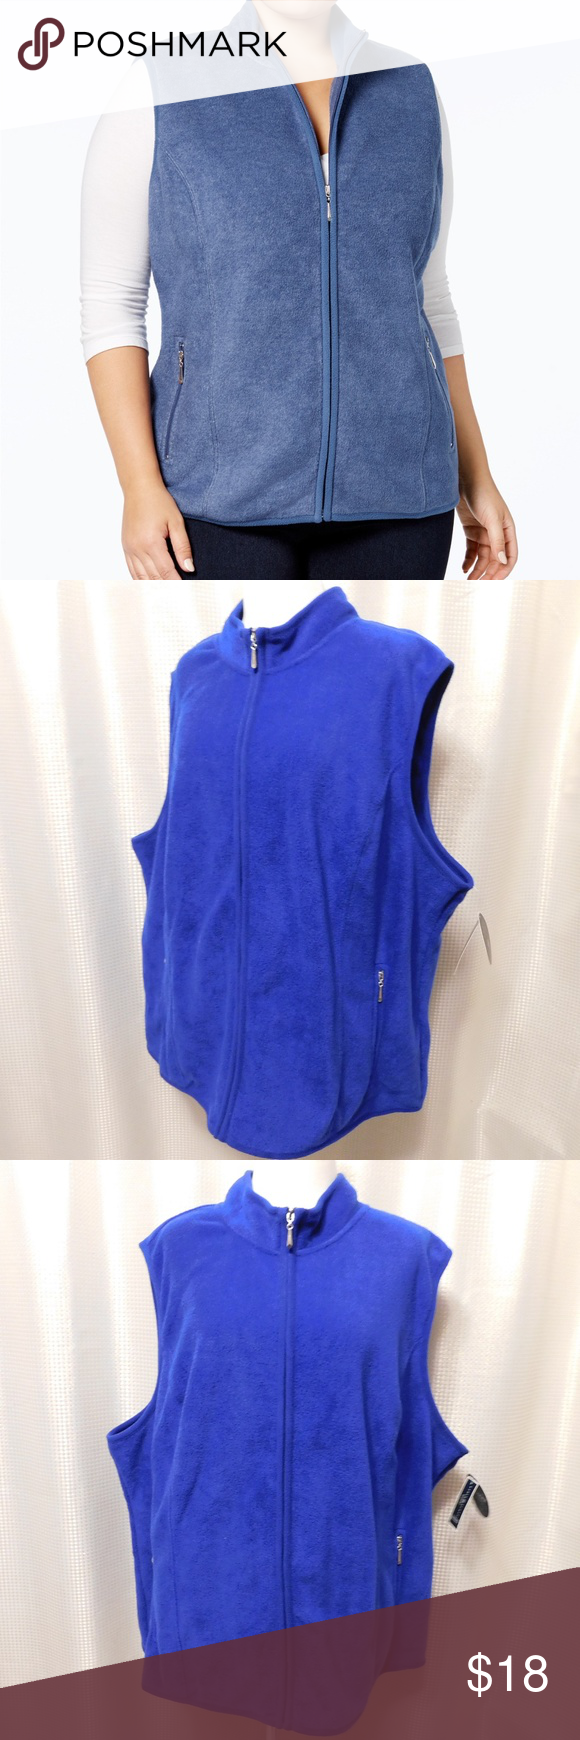 55c133c1c25 Karen Scott Plus Size Zeroproof Fleece Vest Soft in cozy fleece